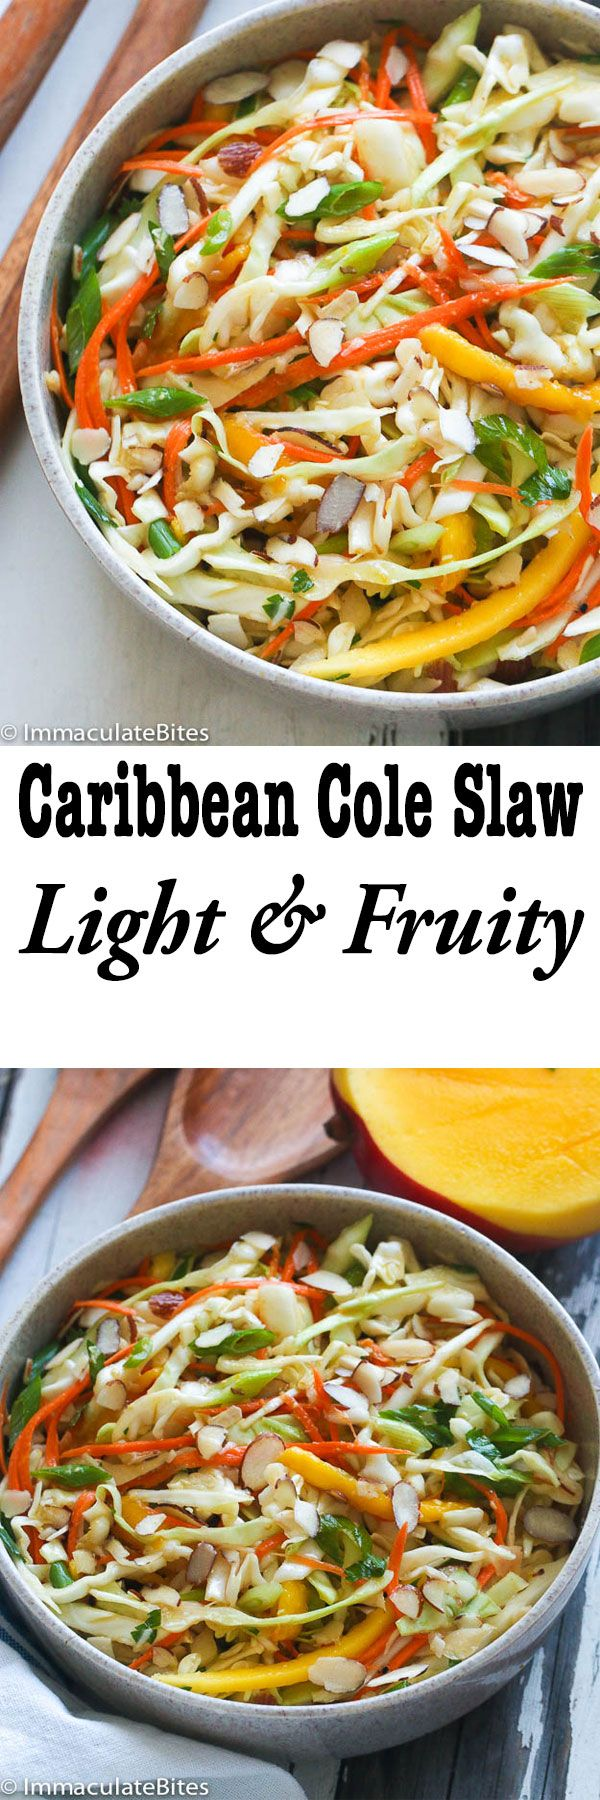 Caribbean Cole Slaw-A Mayo-Free No Mayo Caribbean Coleslaw – Light, Fruity , Sweet and Refreshingly  Good!  Makes the perfect no-cook side dish. Add your favorite protein and make it a meal!